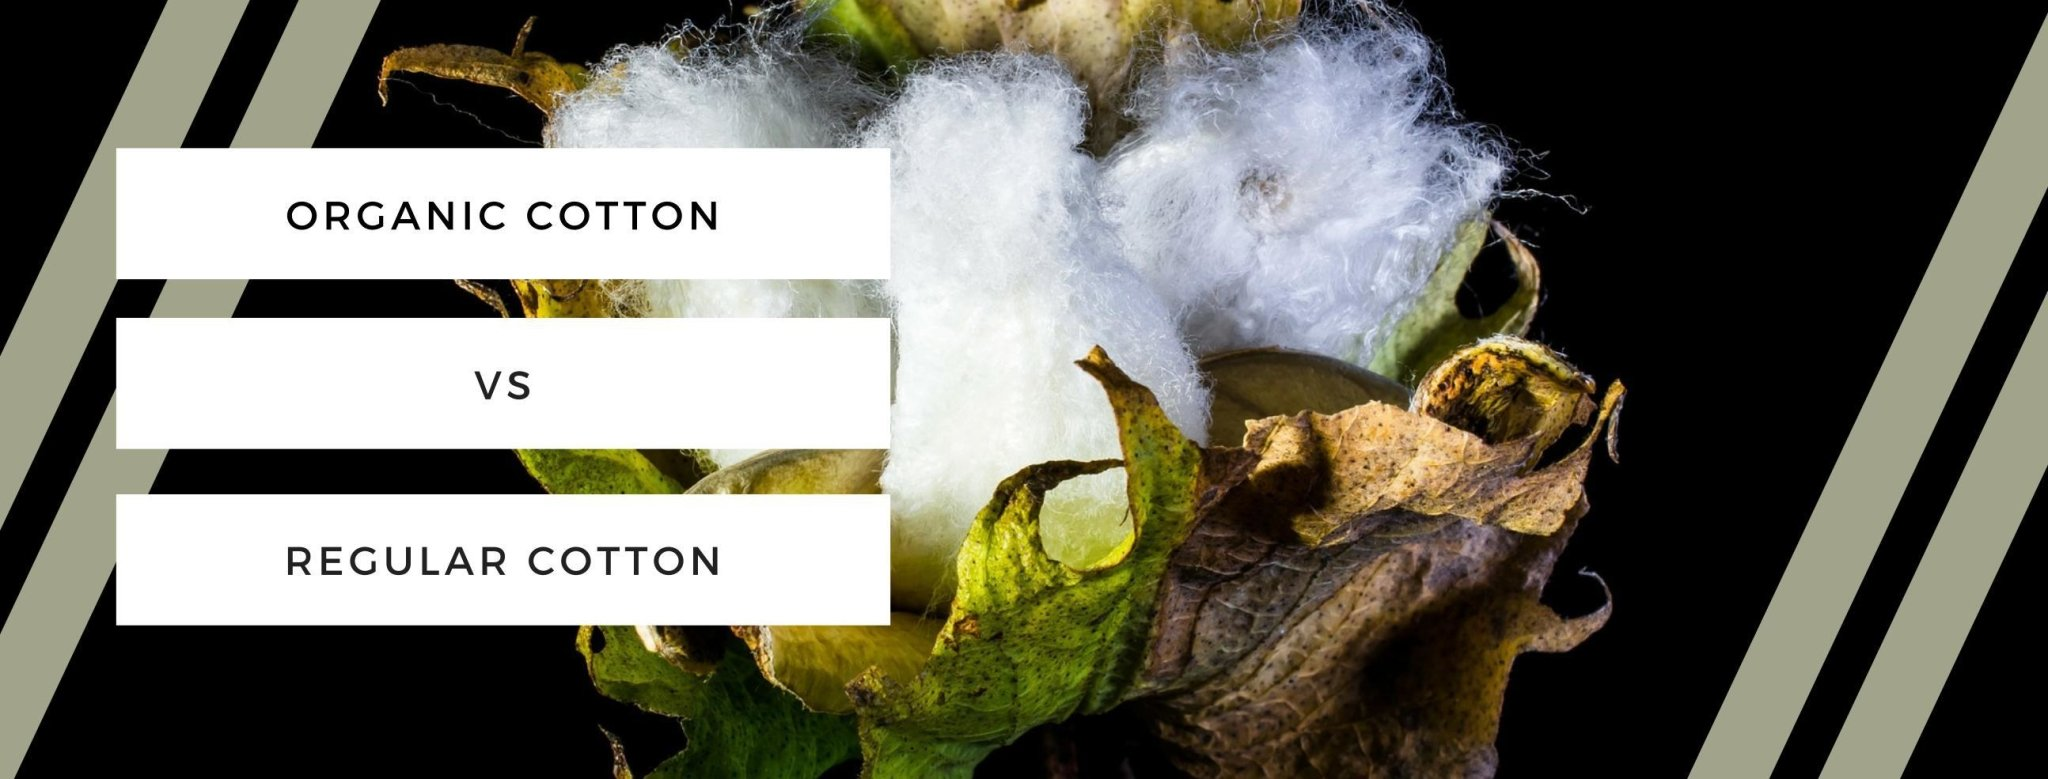 ORGANIC COTTON VS REGULAR COTTON | TheProudLondon